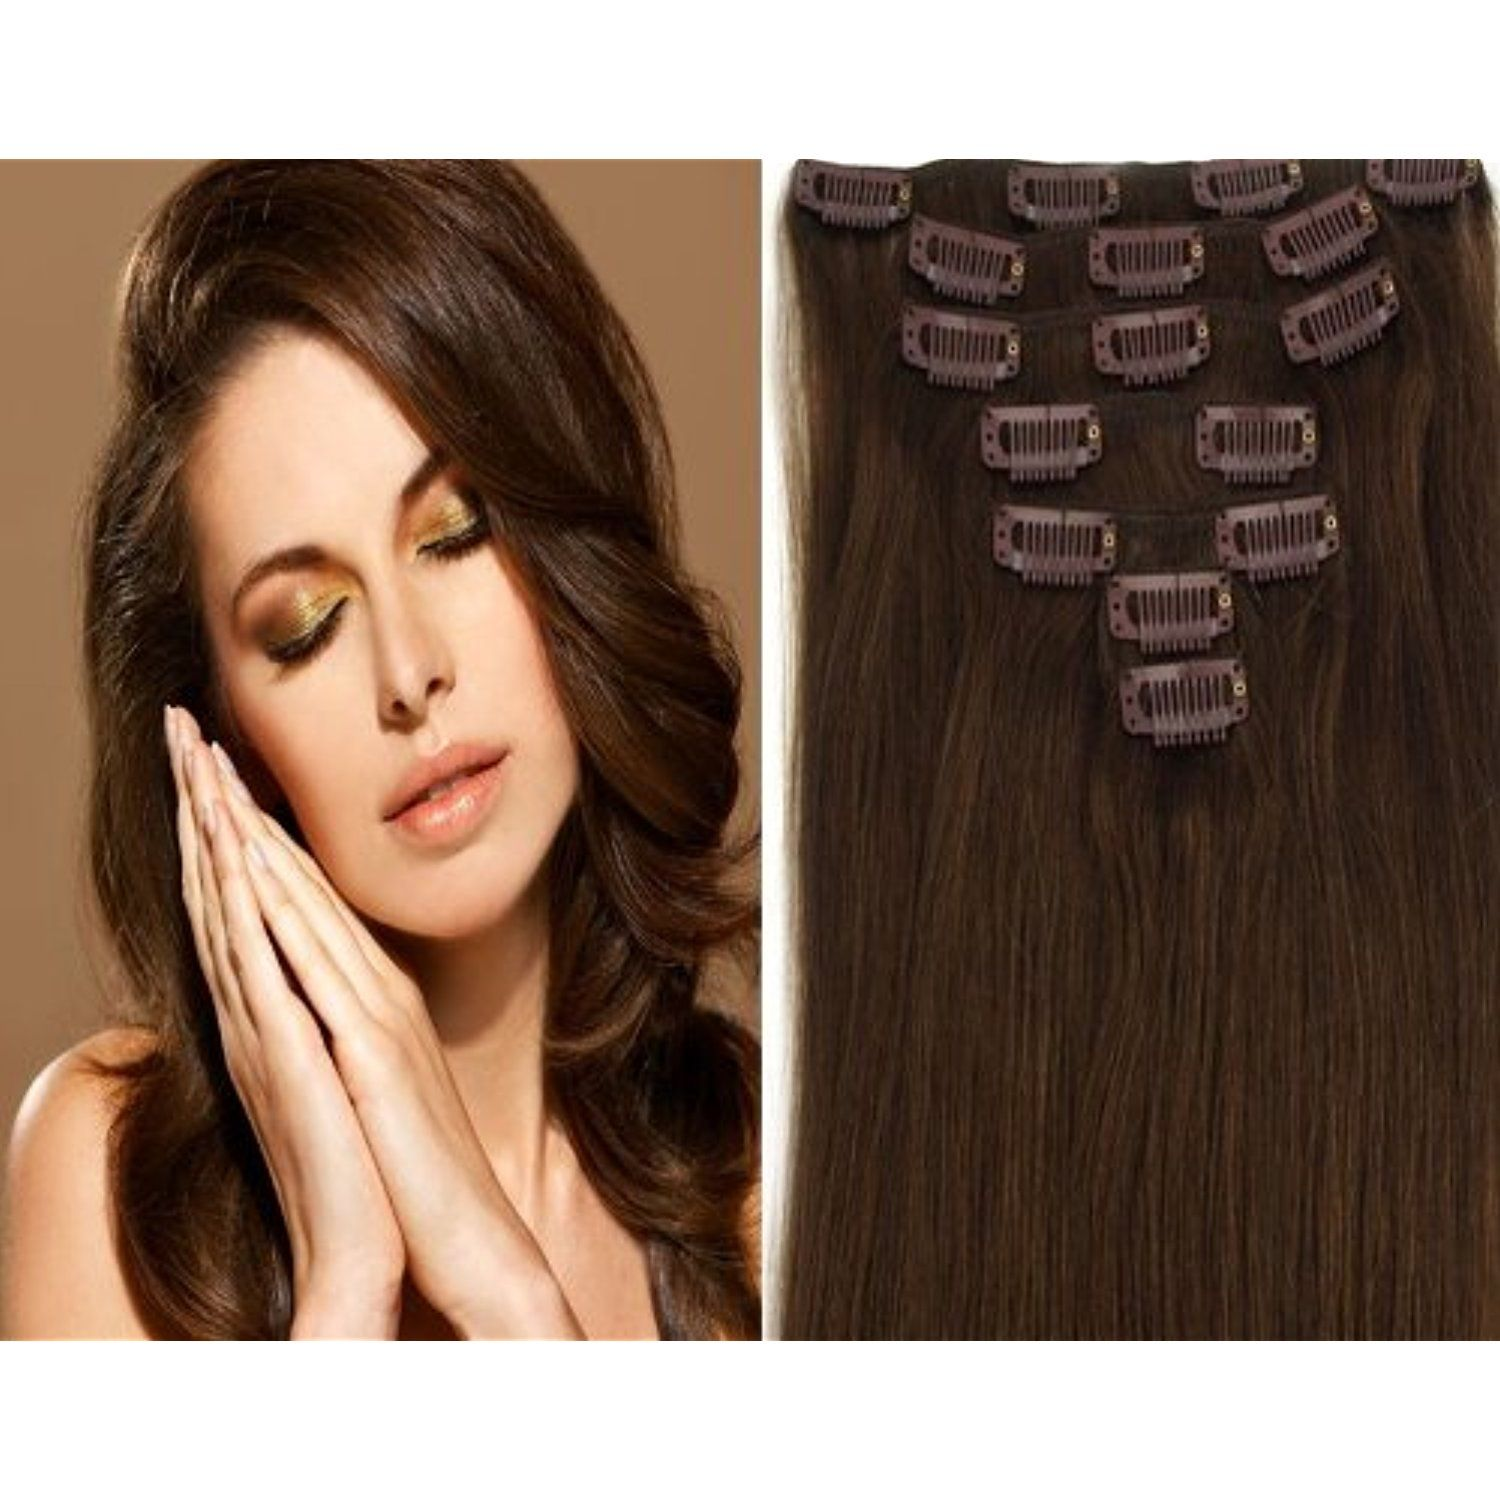 CLIP IN REMY REAL HUMAN HAIR EXTENSIONS 7PCS 20 Inch 70g